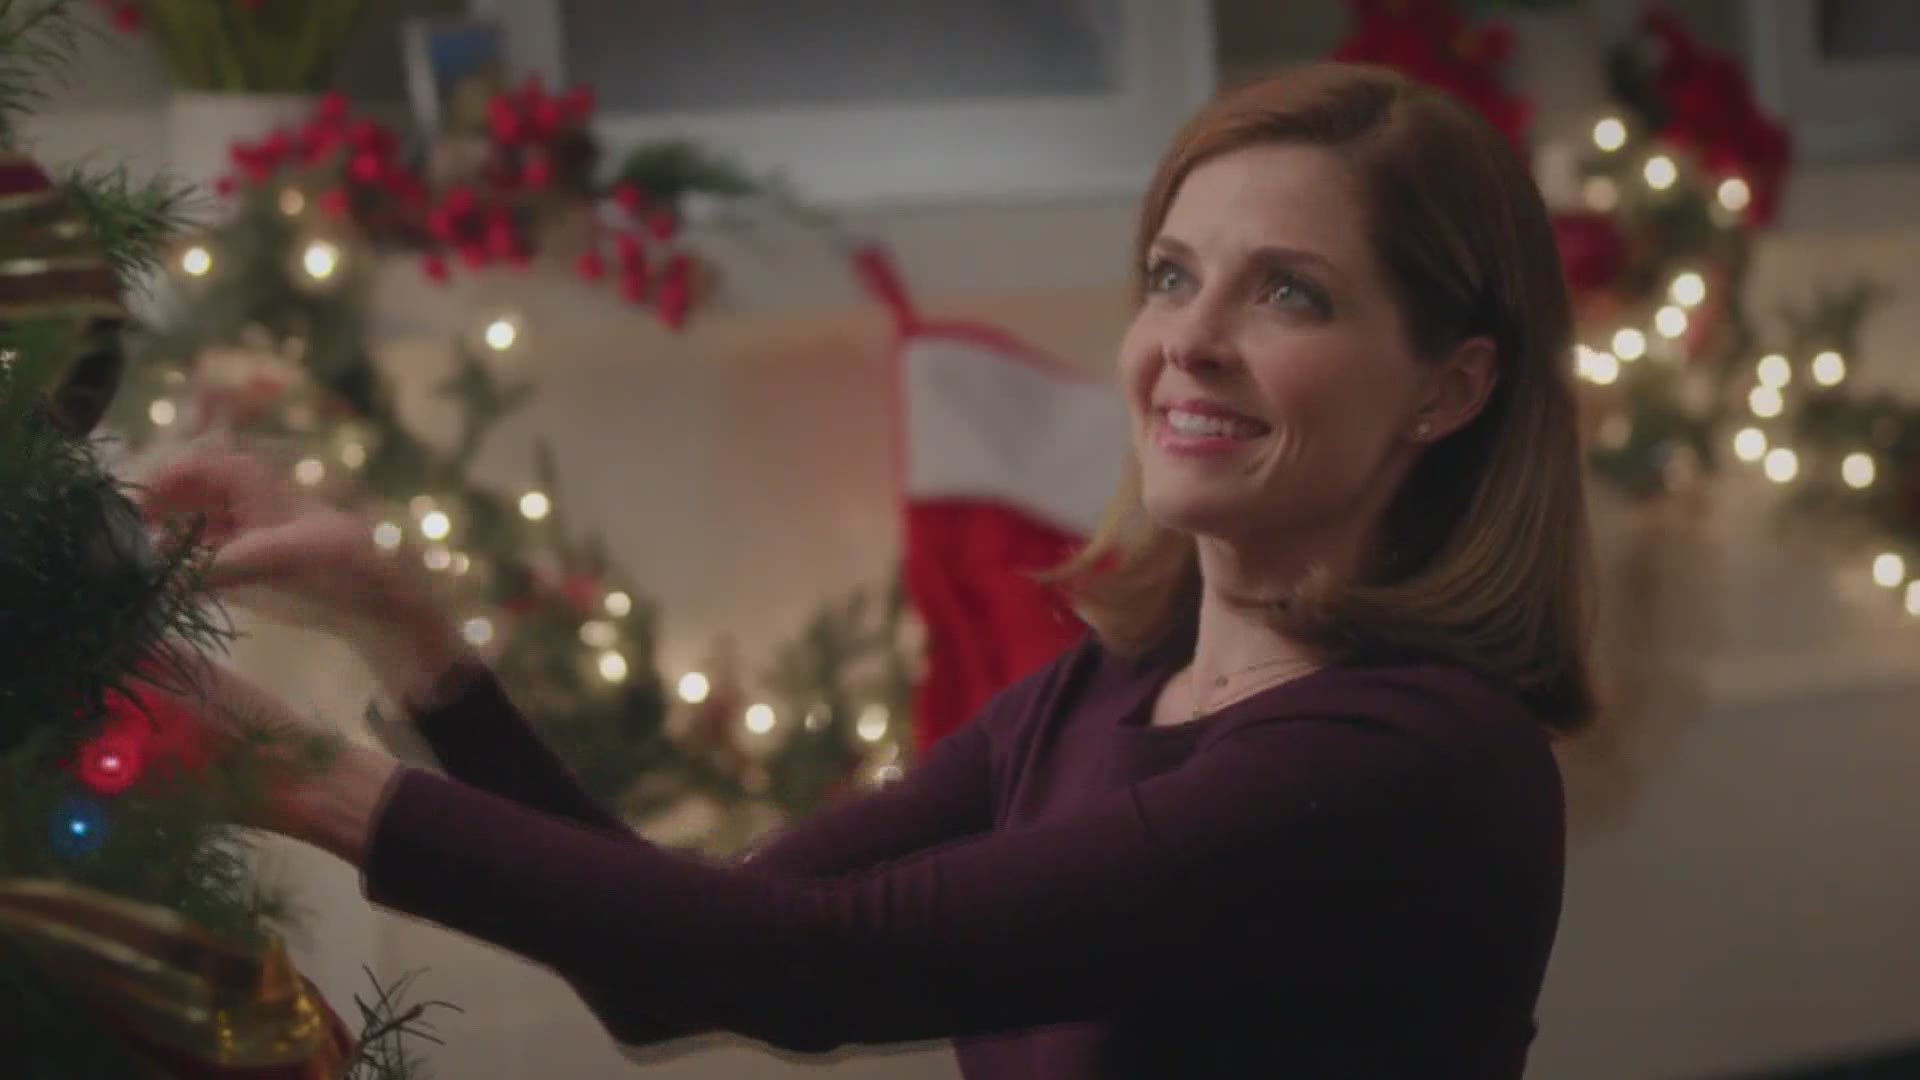 Weather For South Carolina On Christmas 2020 Here's your complete Hallmark Christmas movie schedule for 2020